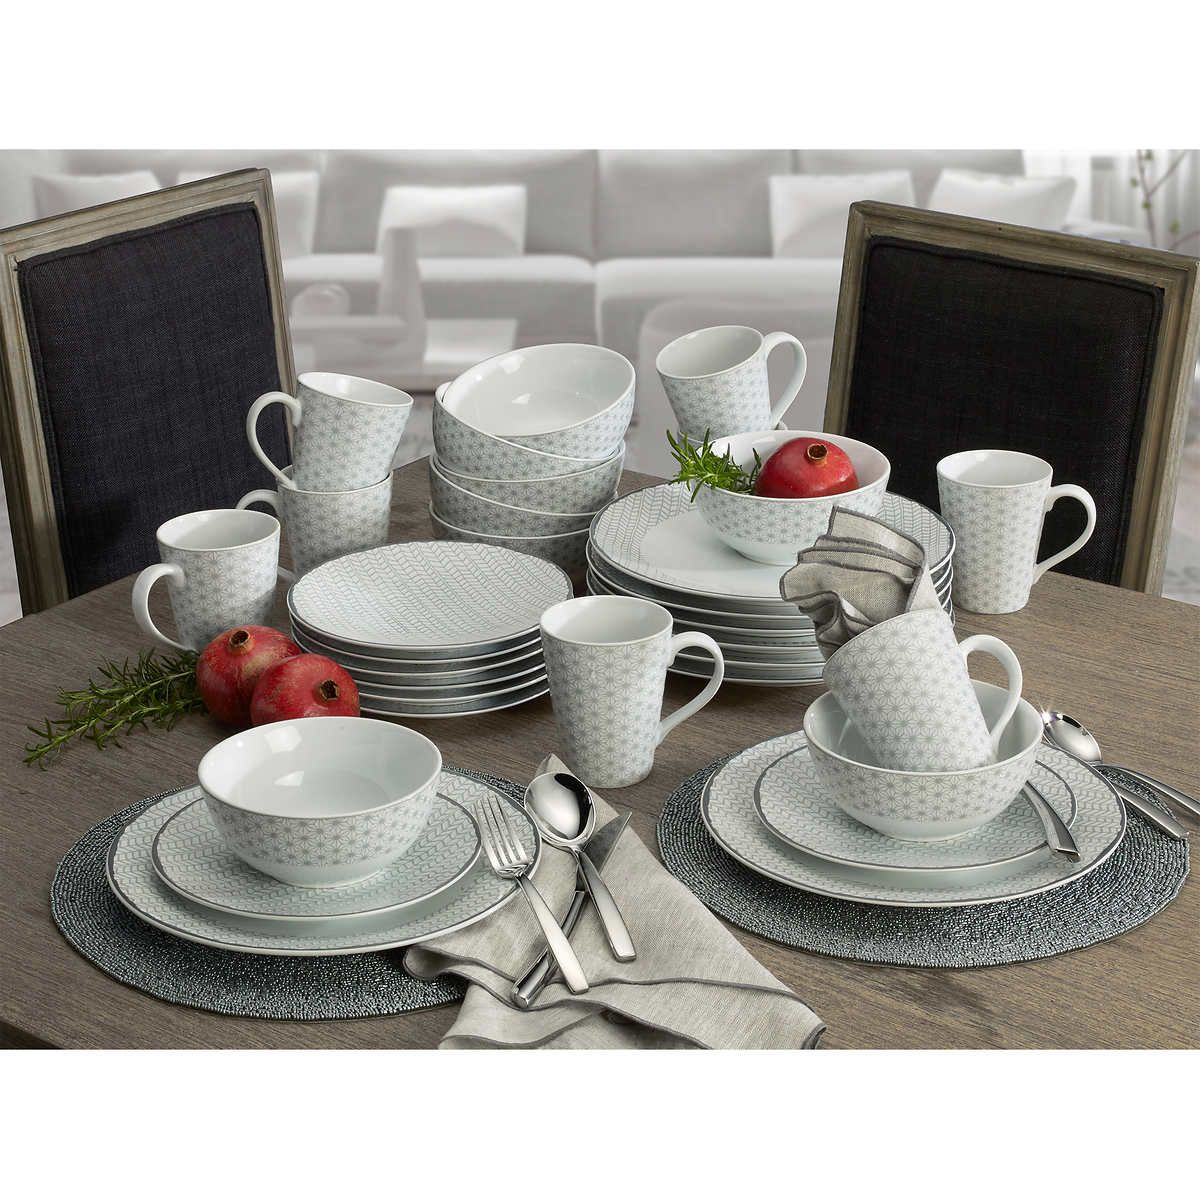 Mikasa Avery Medley 32-piece Dinnerware Set  sc 1 st  Pinterest & Mikasa Avery Medley 32-piece Dinnerware Set | house planning ...